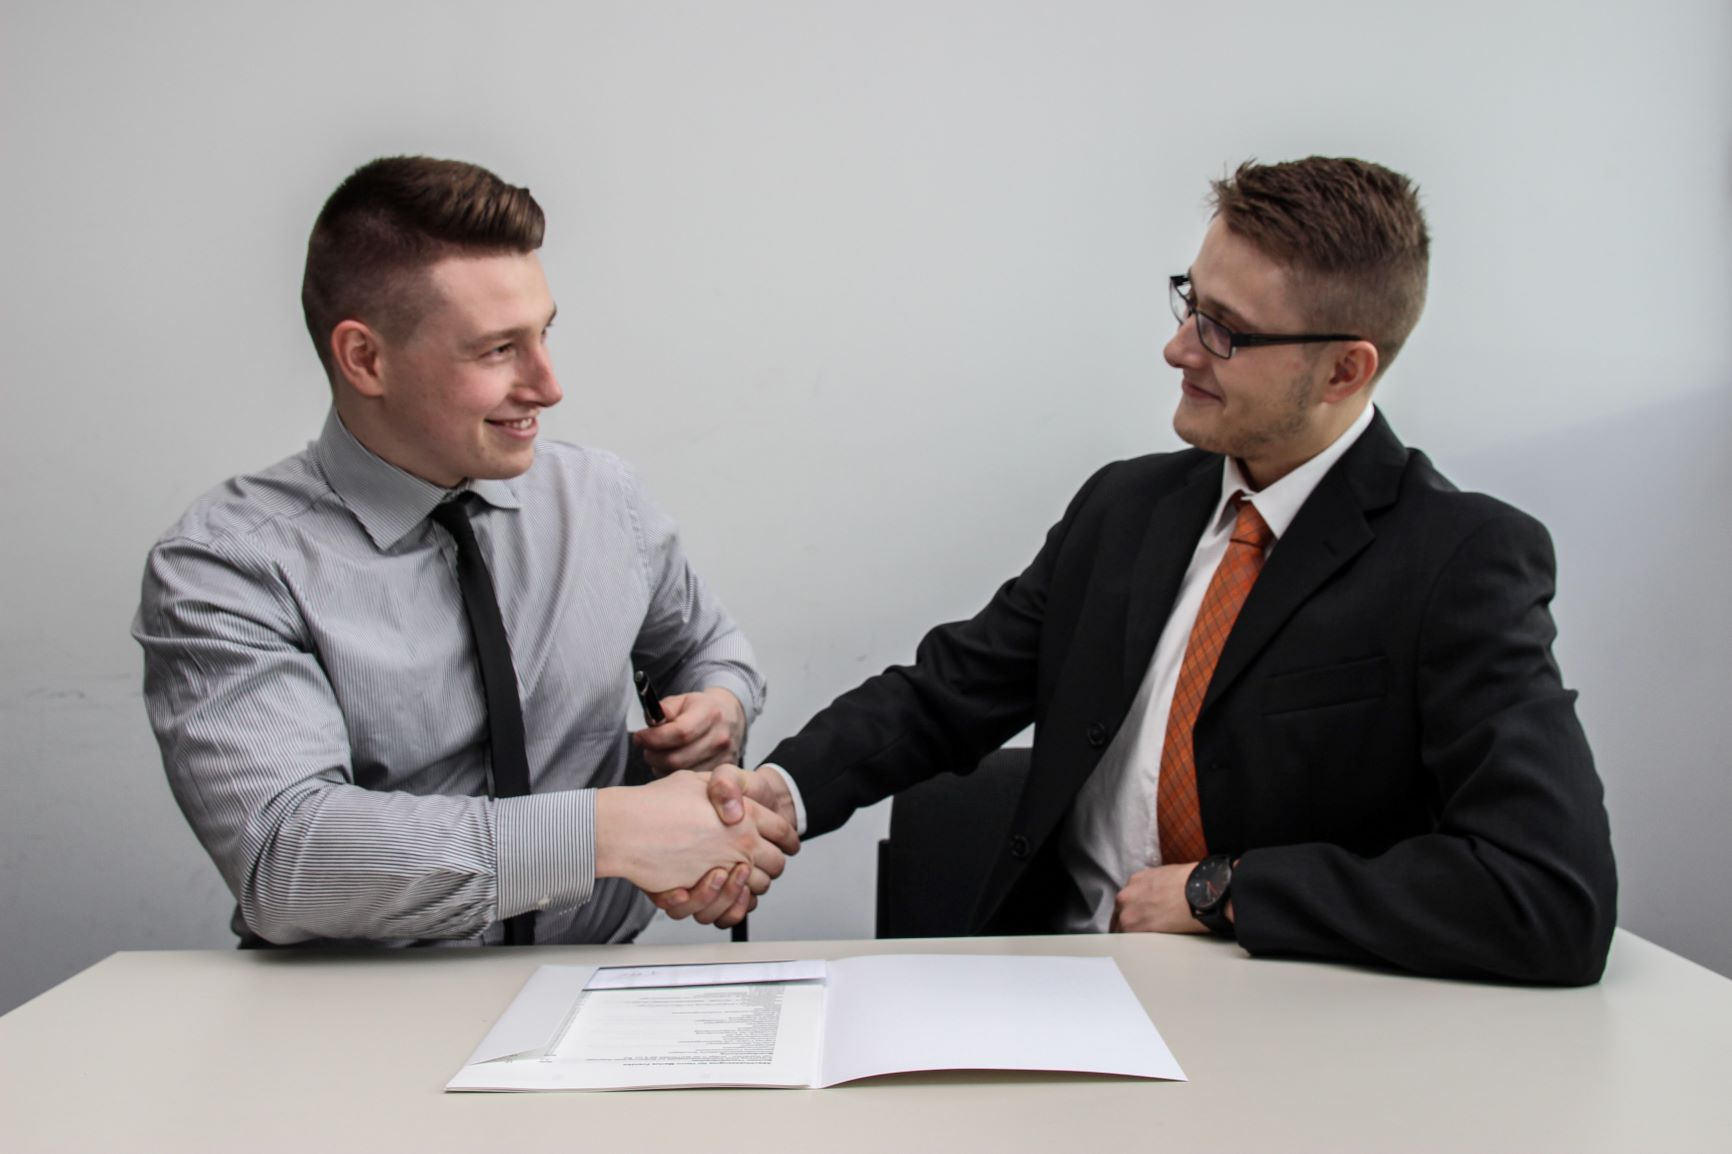 How to find federal contracts?